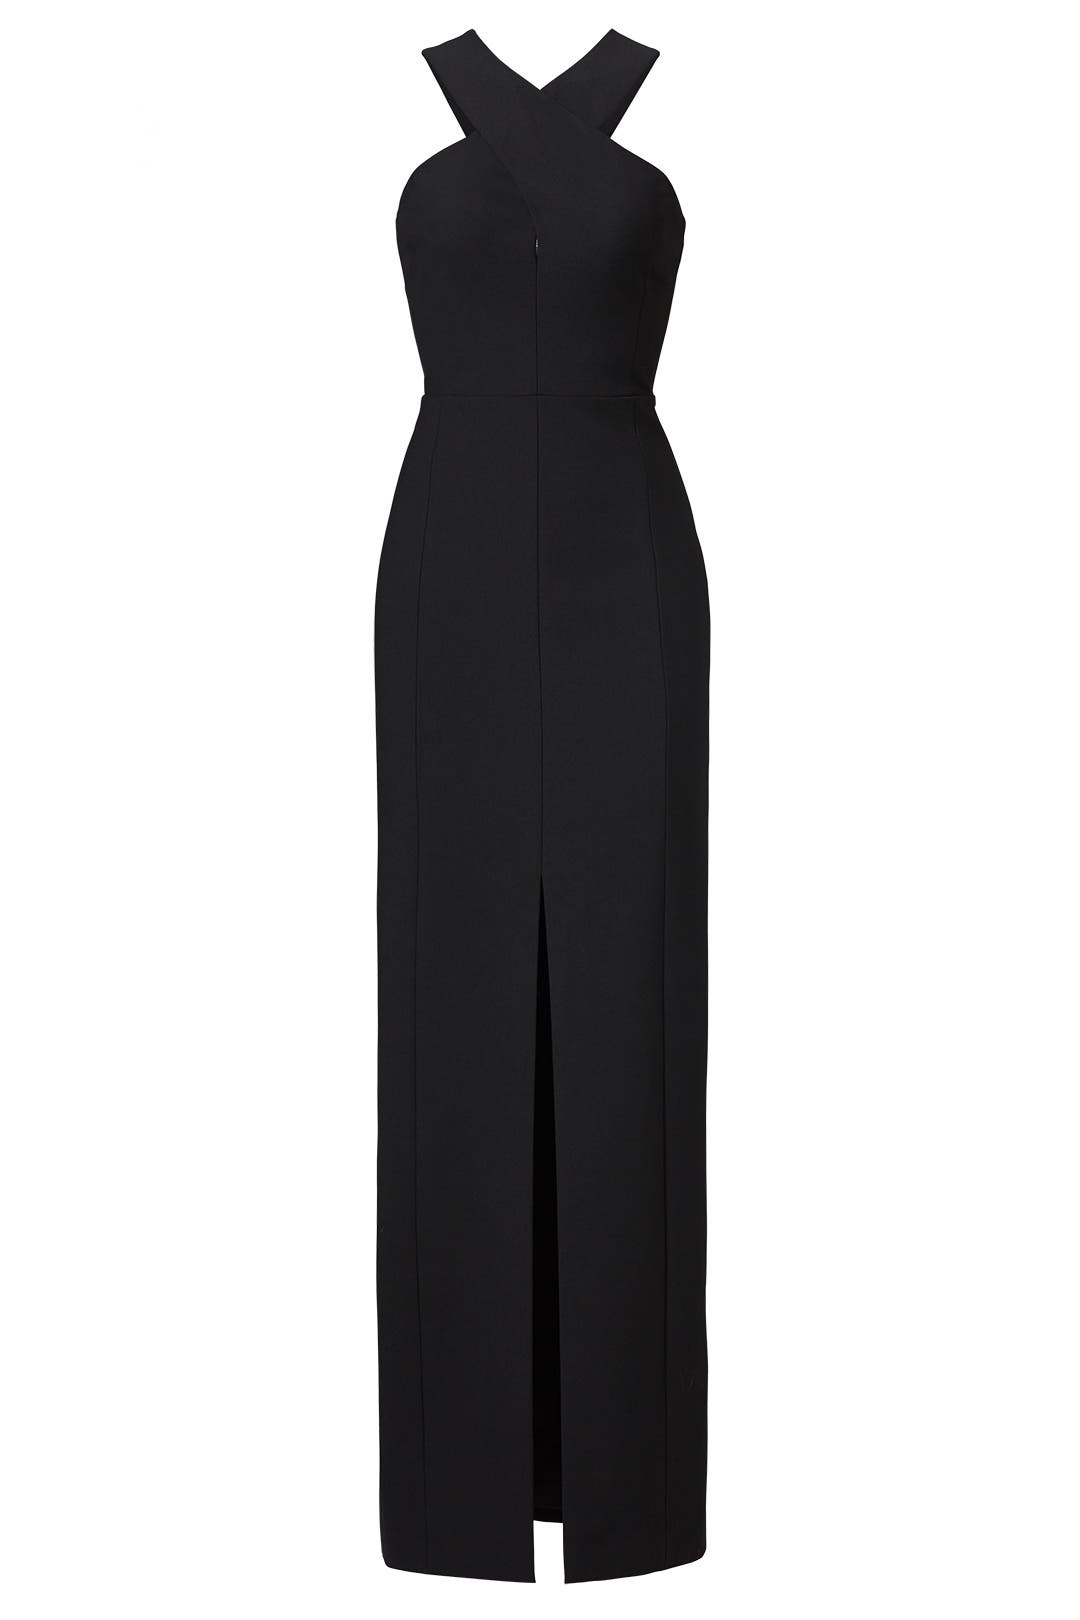 Black dress zipper back and forth